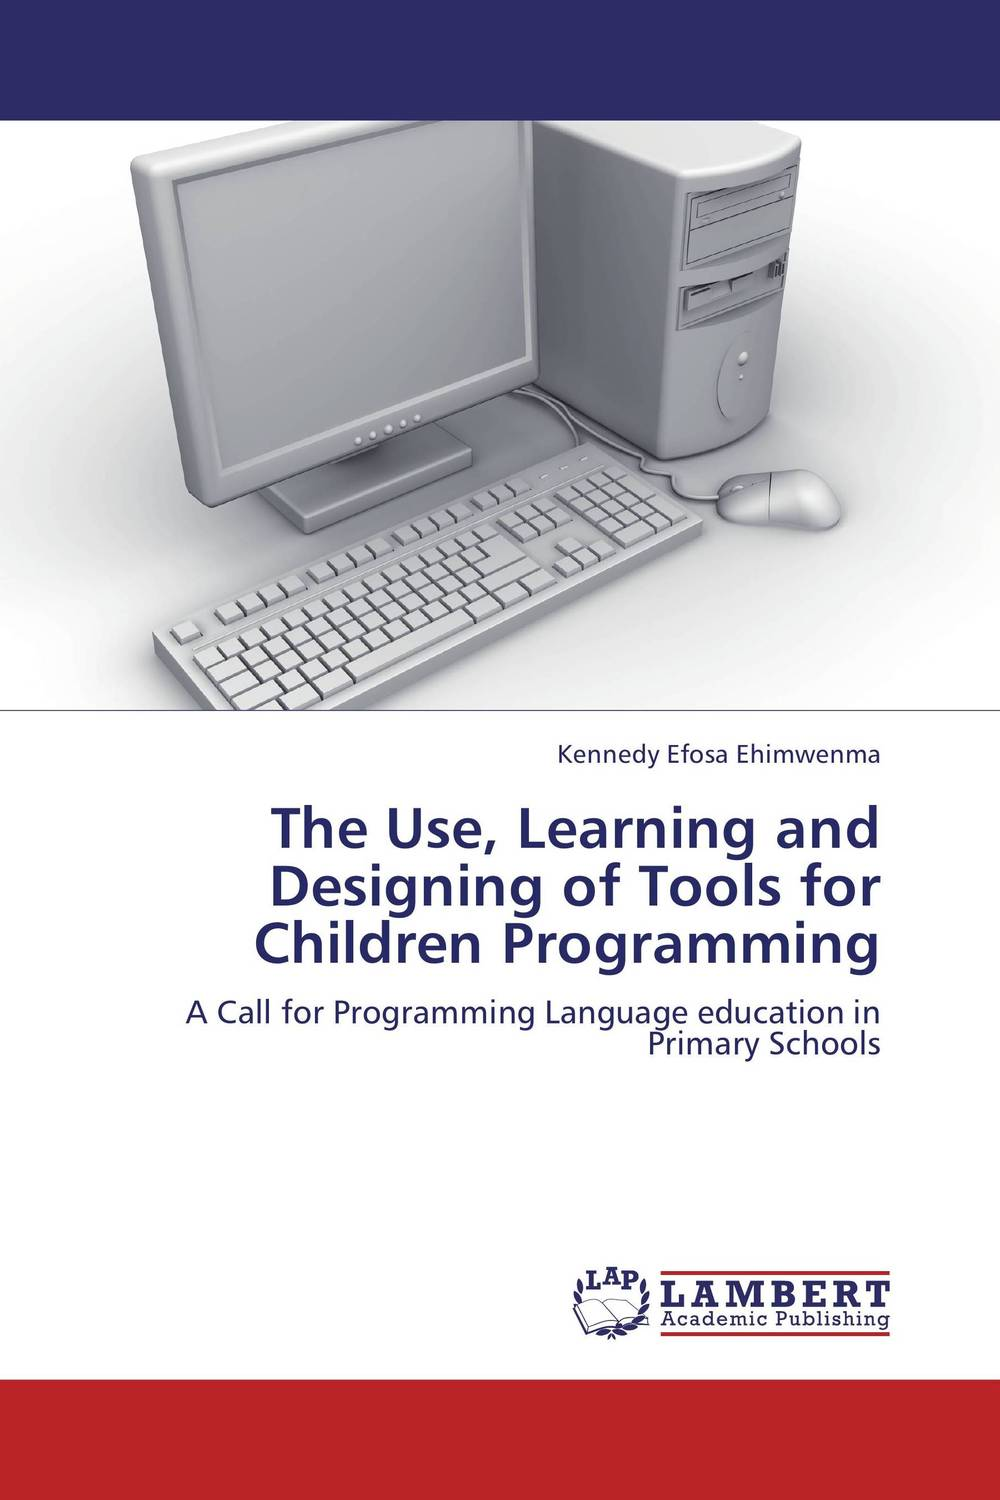 The Use, Learning and Designing of Tools for Children Programming james langbridge a arduino sketches tools and techniques for programming wizardry